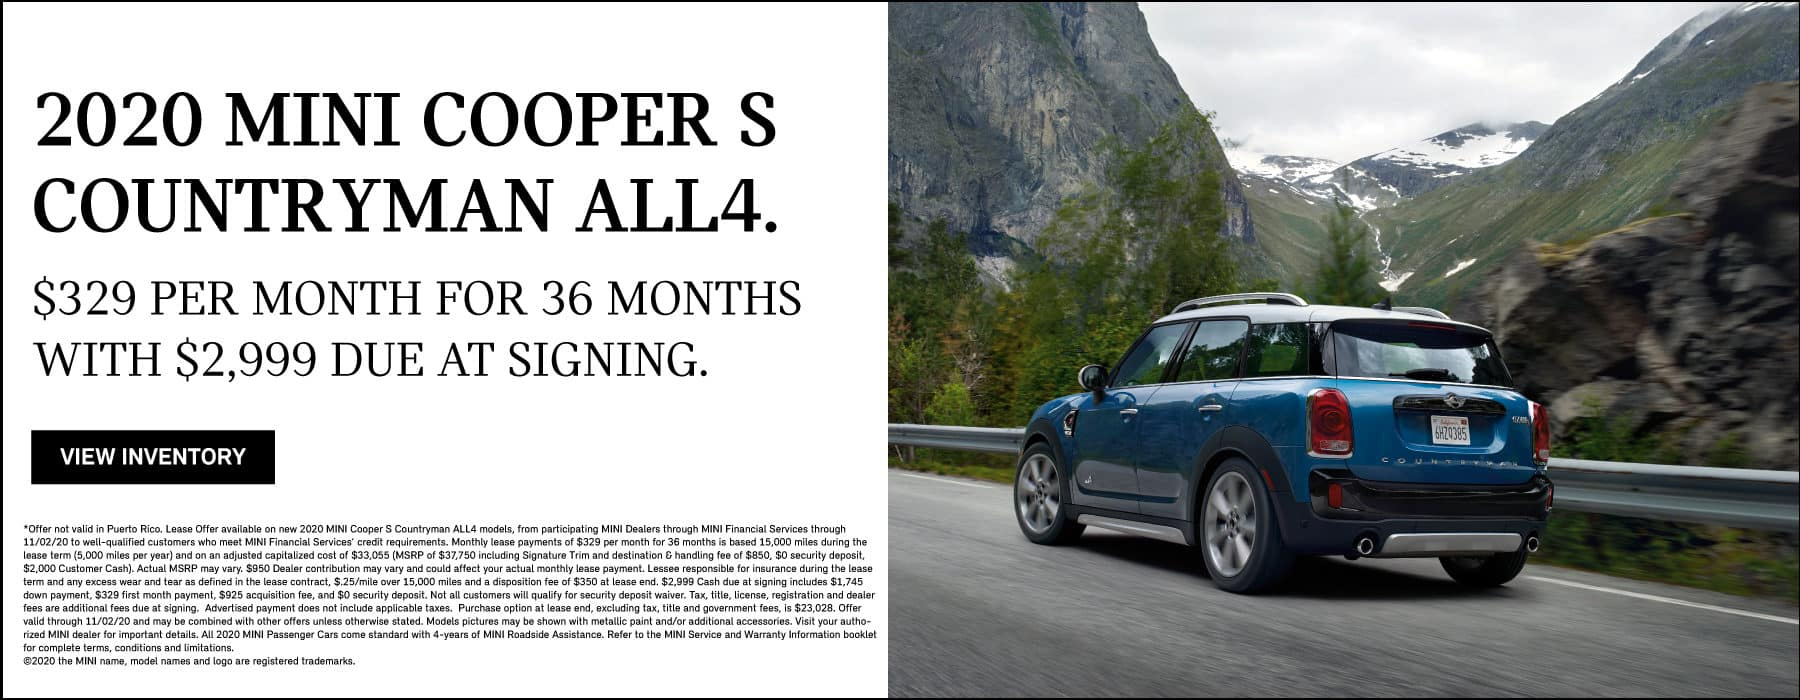 2020 MINI COOPER S COUNTRYAMN ALL4. $329 per month for 36 months with $2999 due at signing.